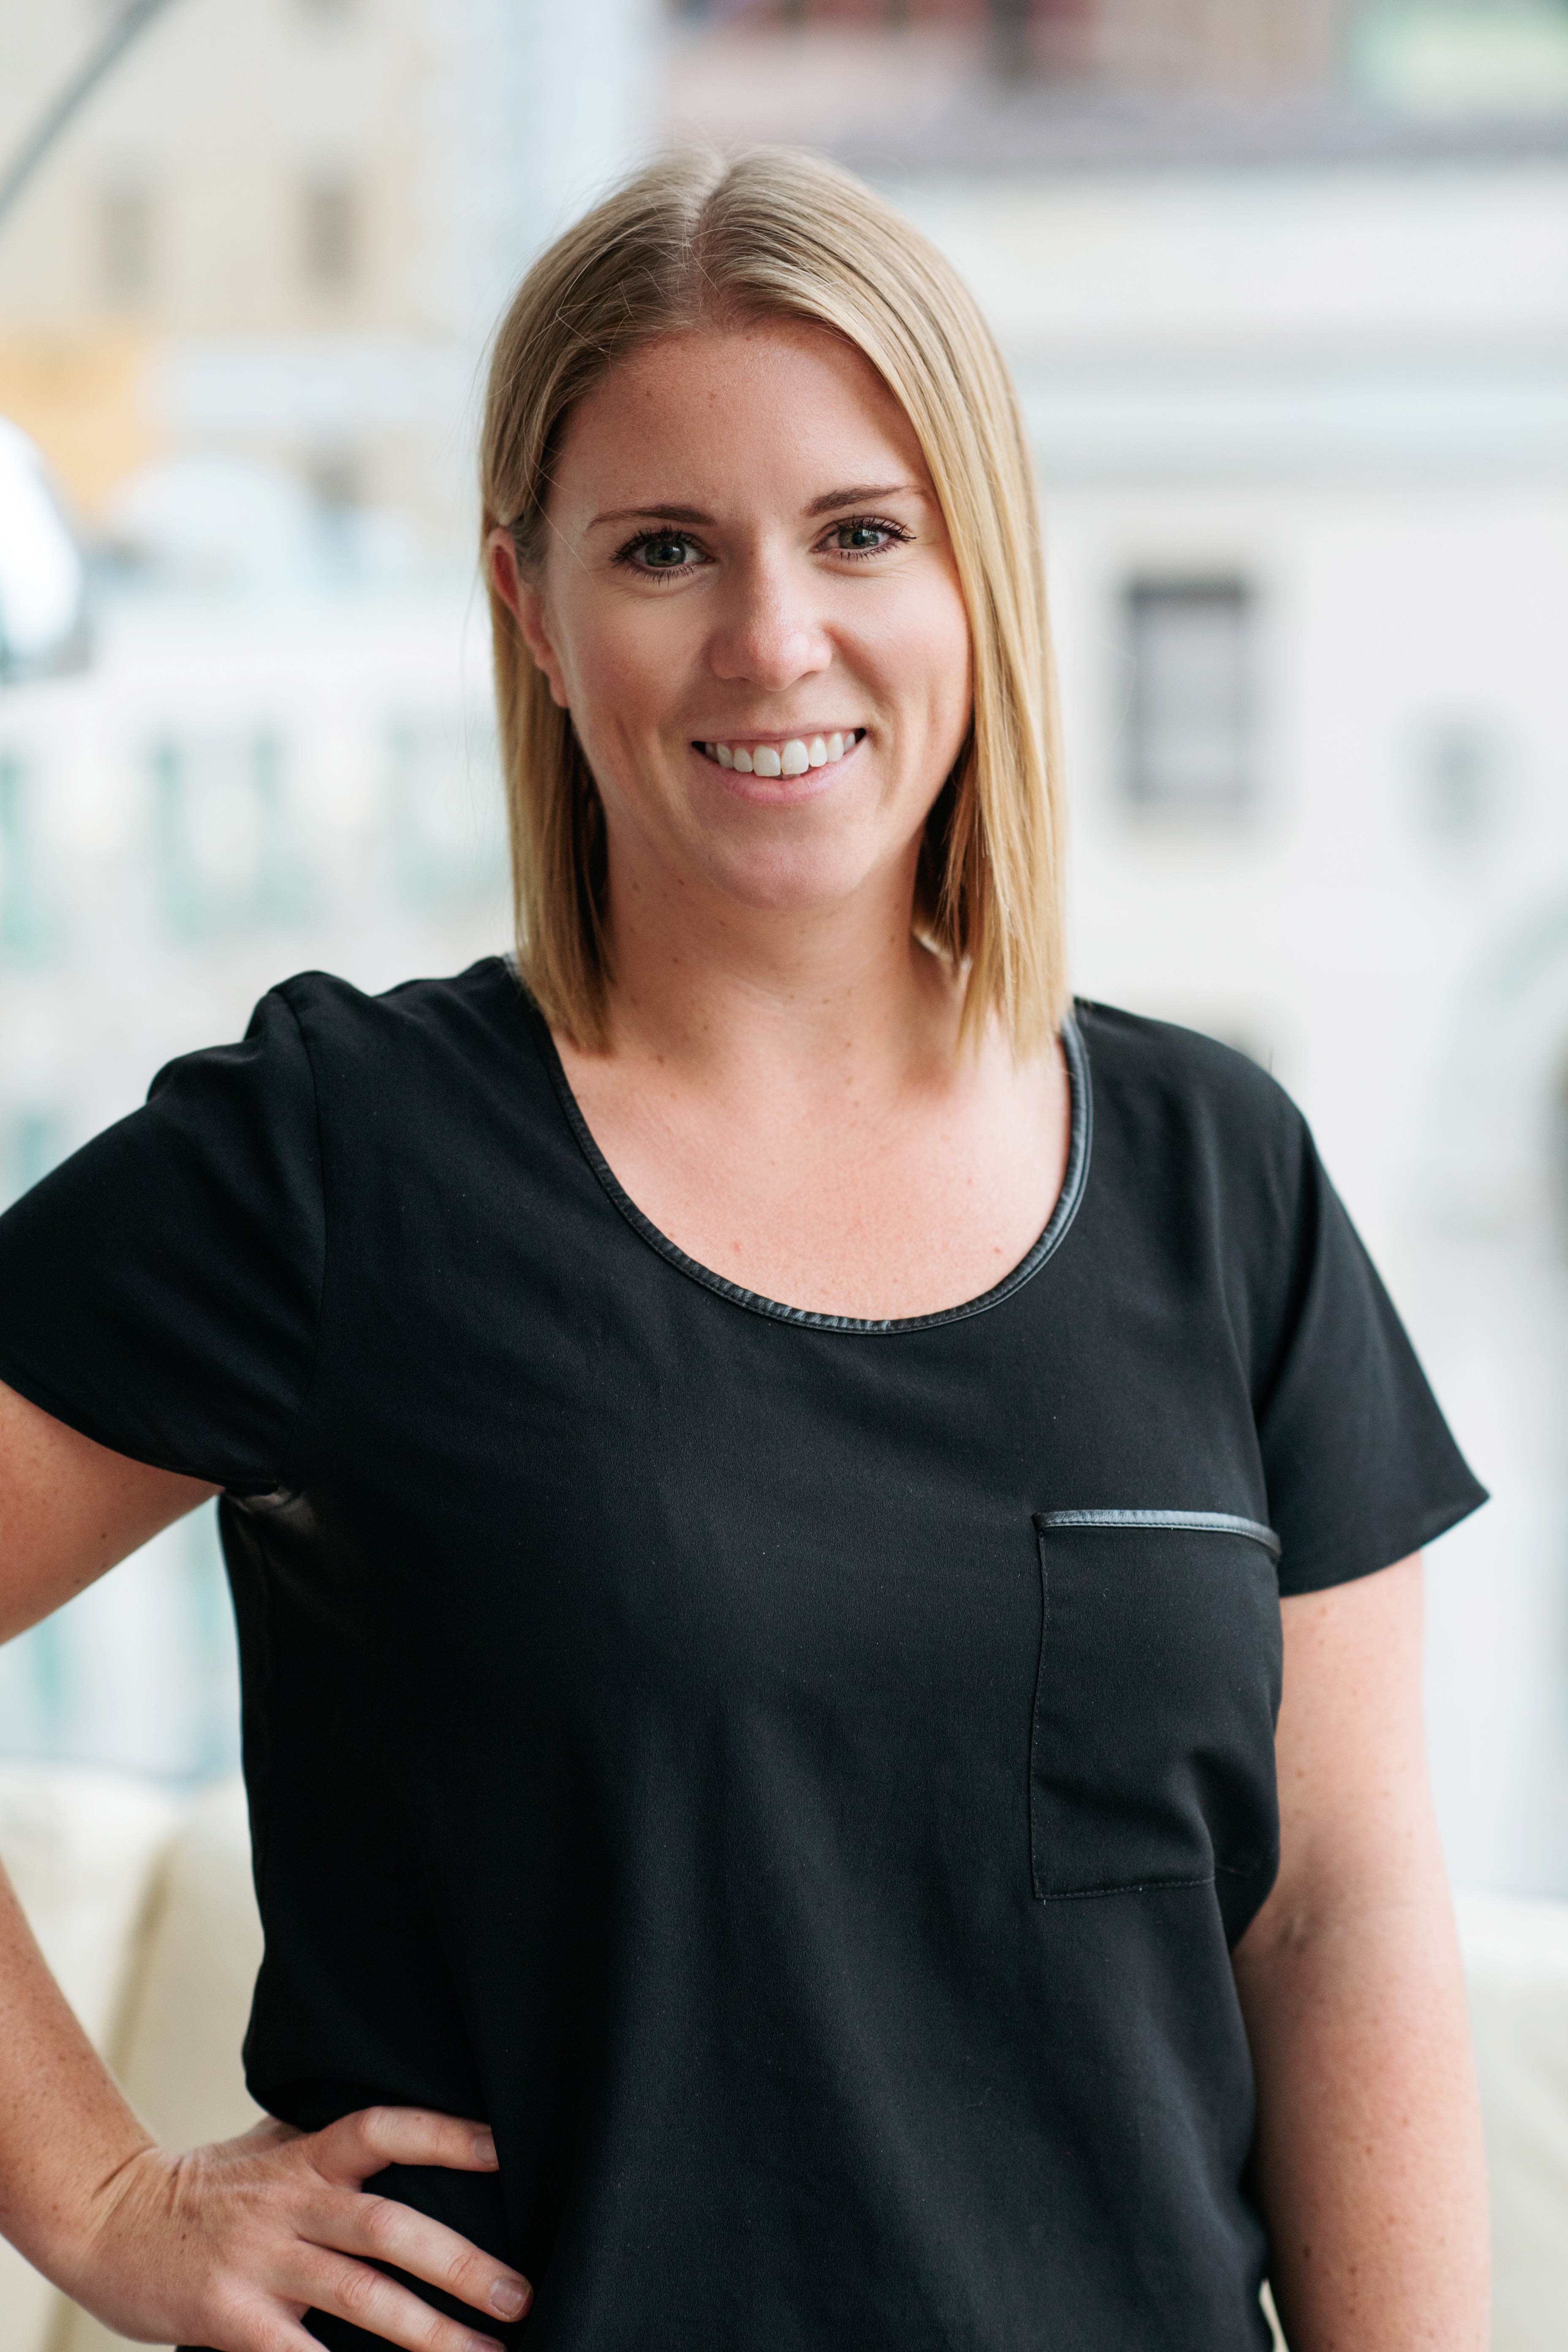 Dr. Gillian Growse, Chiropractor